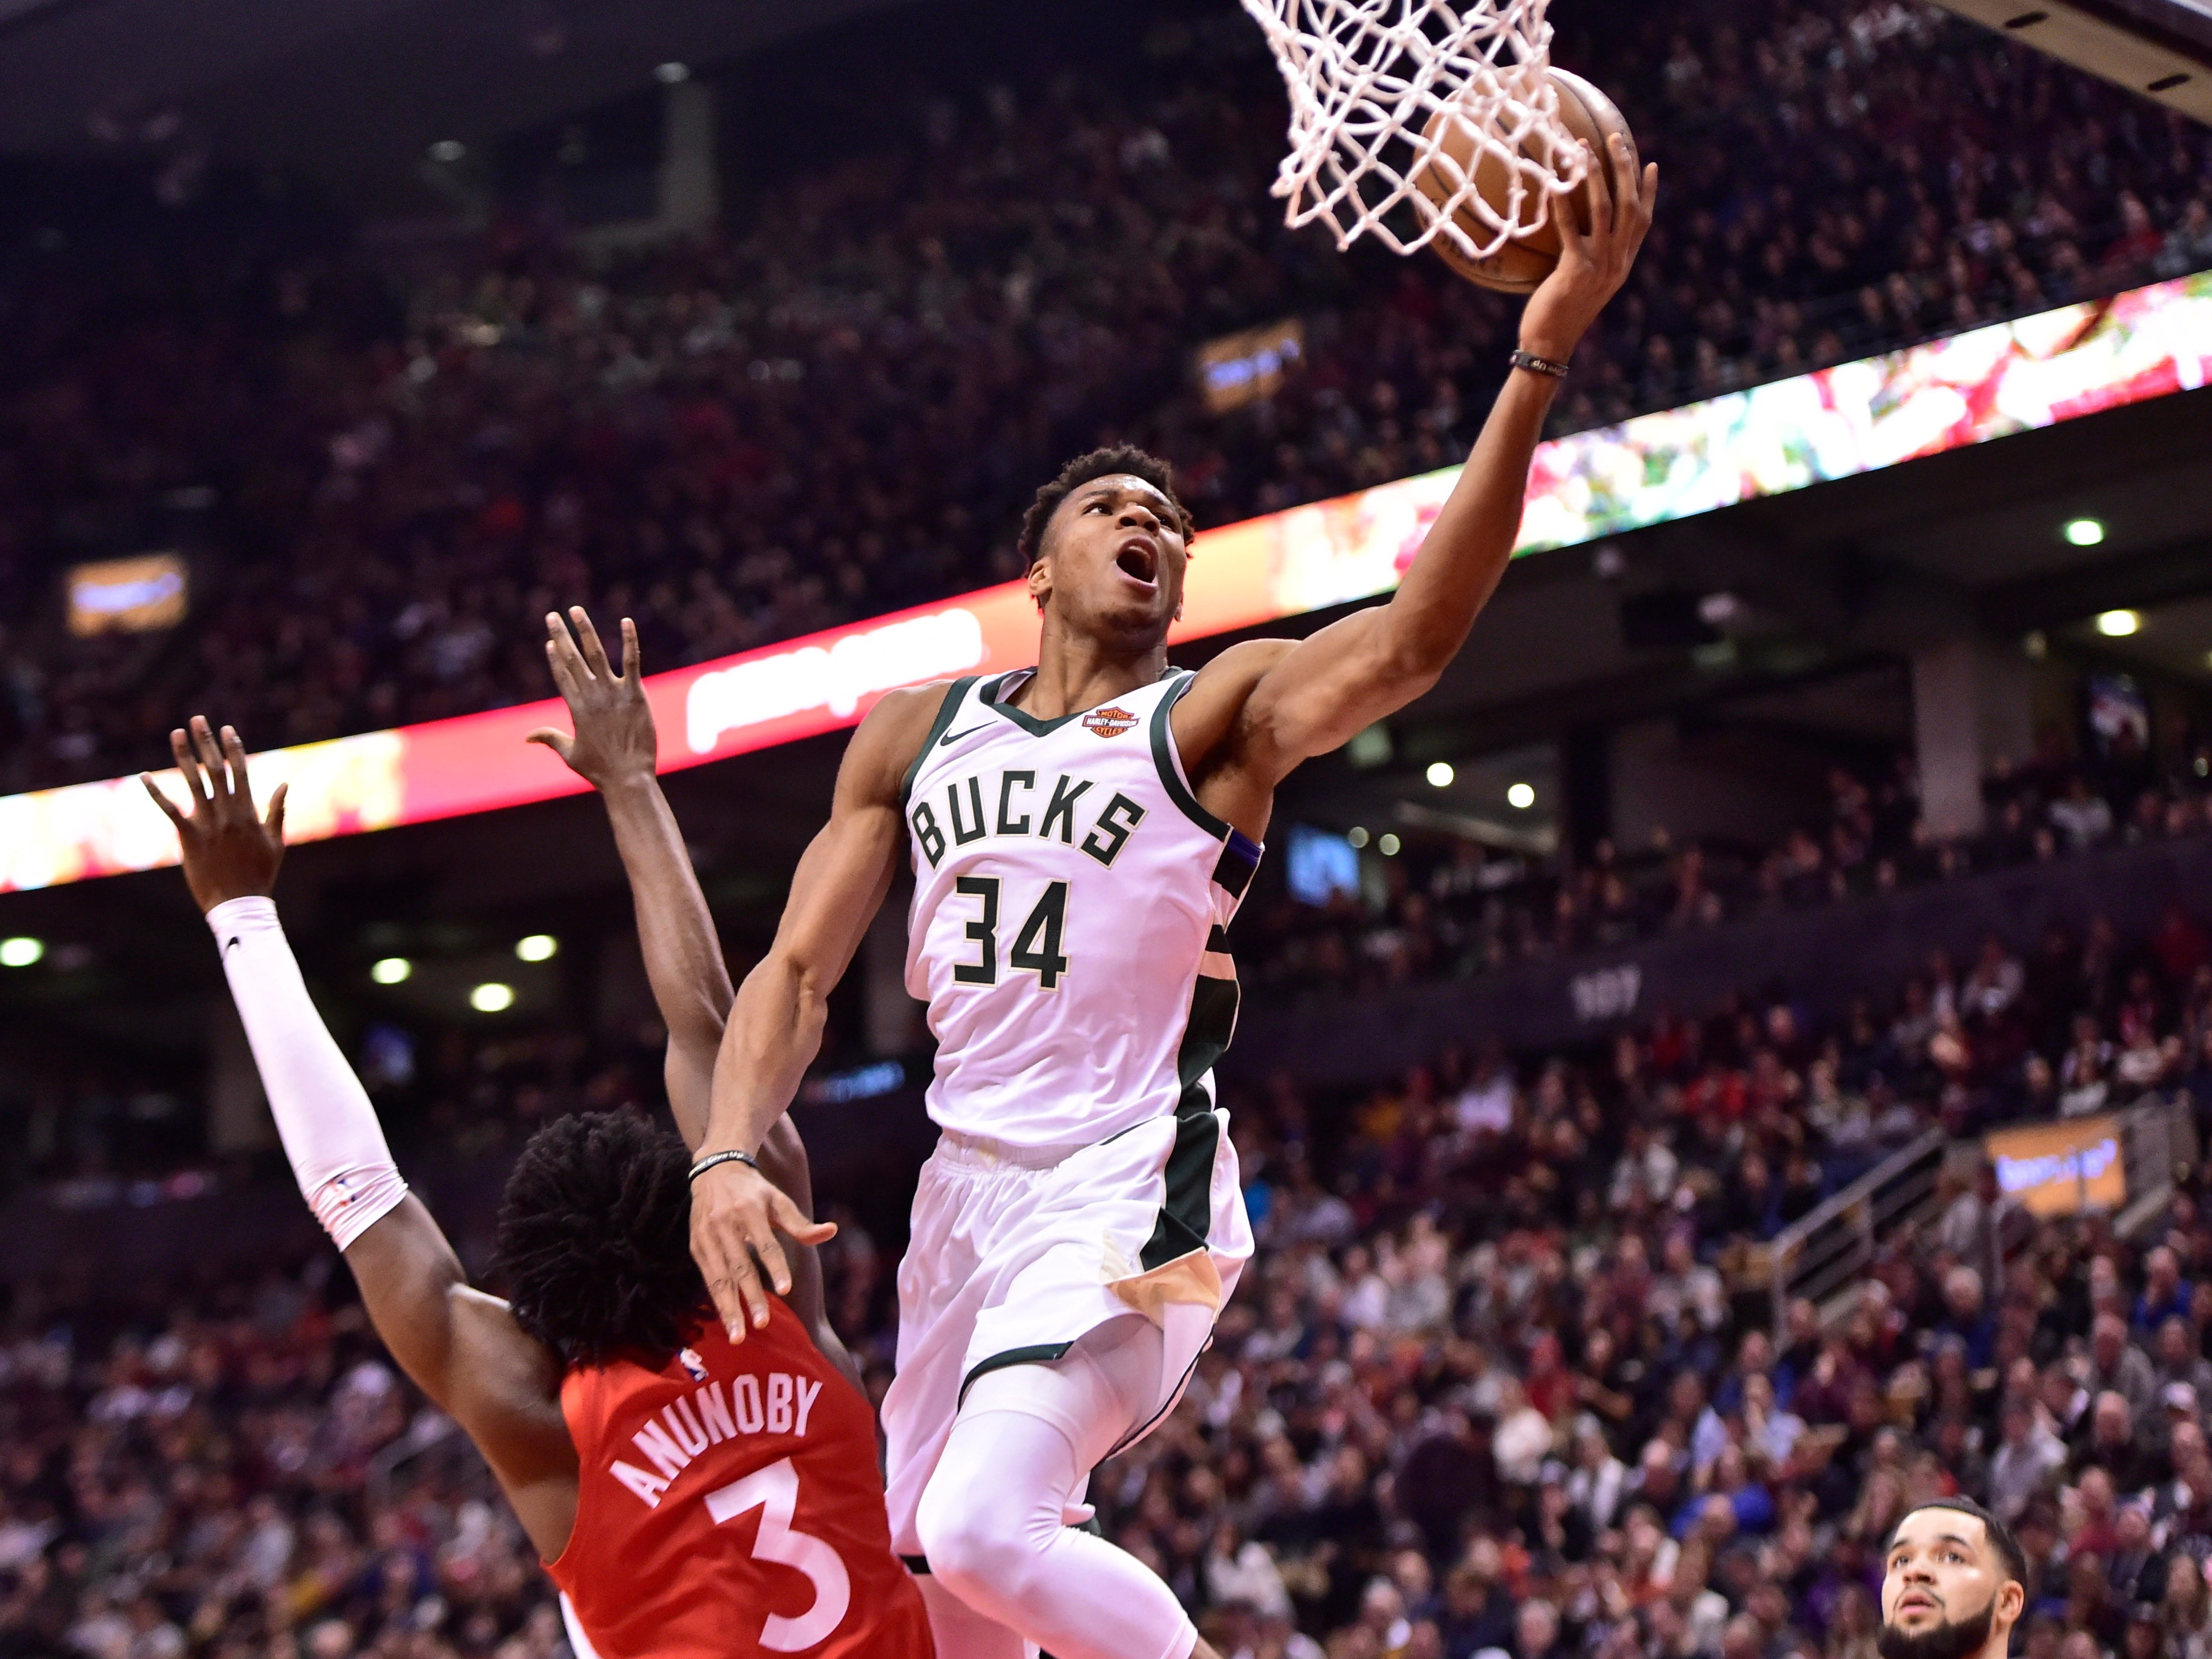 Bucks forward Giannis Antetokounmpo throws up a finger-roll after getting around Raptors forward OG Anunoby during first half Thursday night.